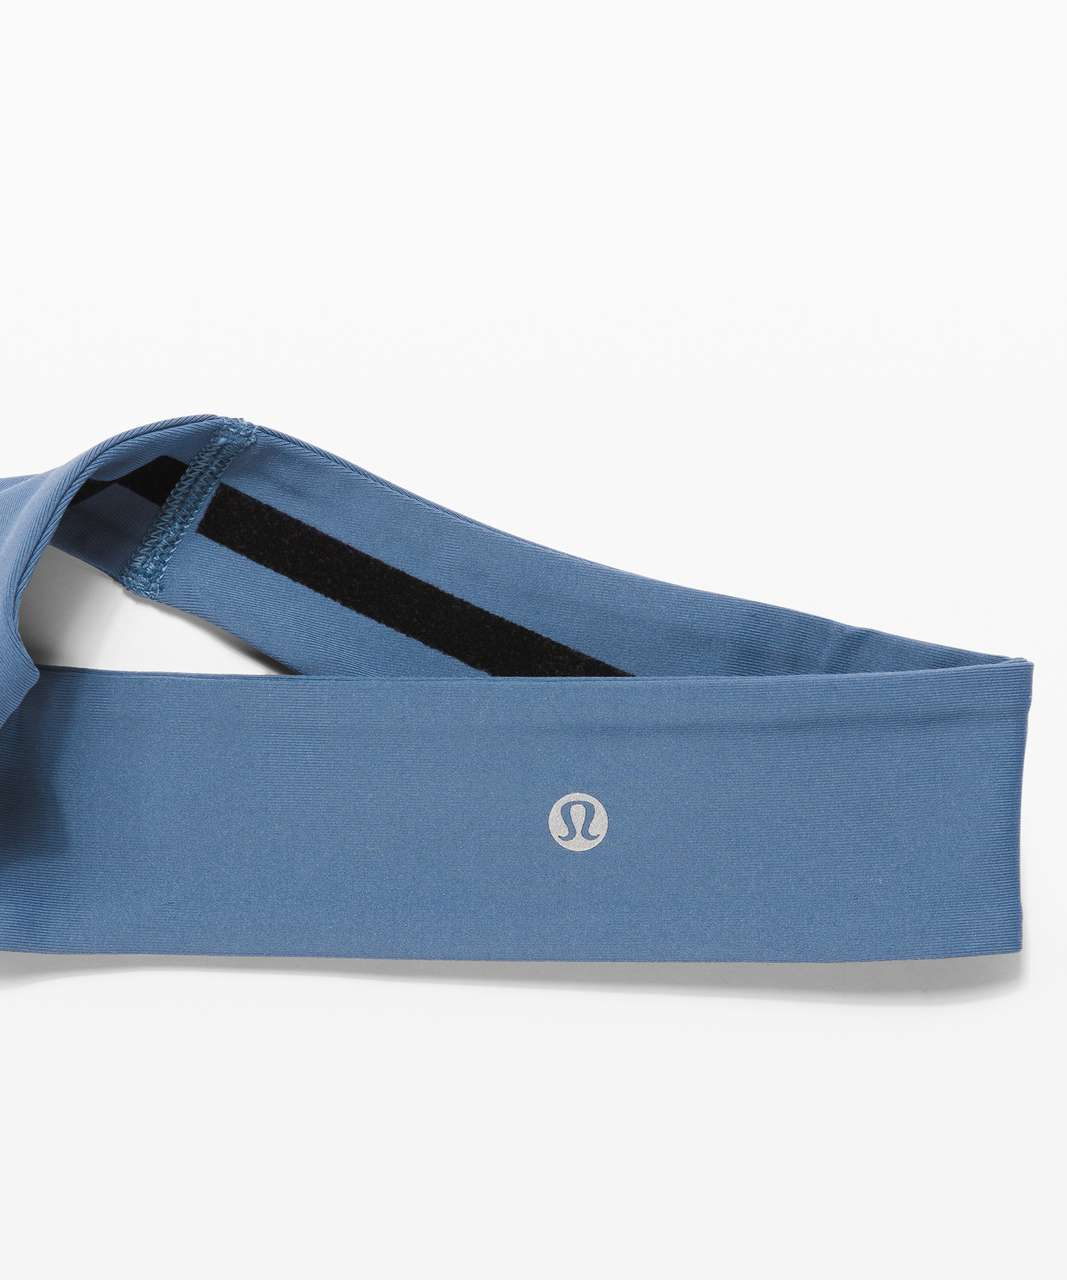 Lululemon Fly Away Tamer Headband II - Code Blue